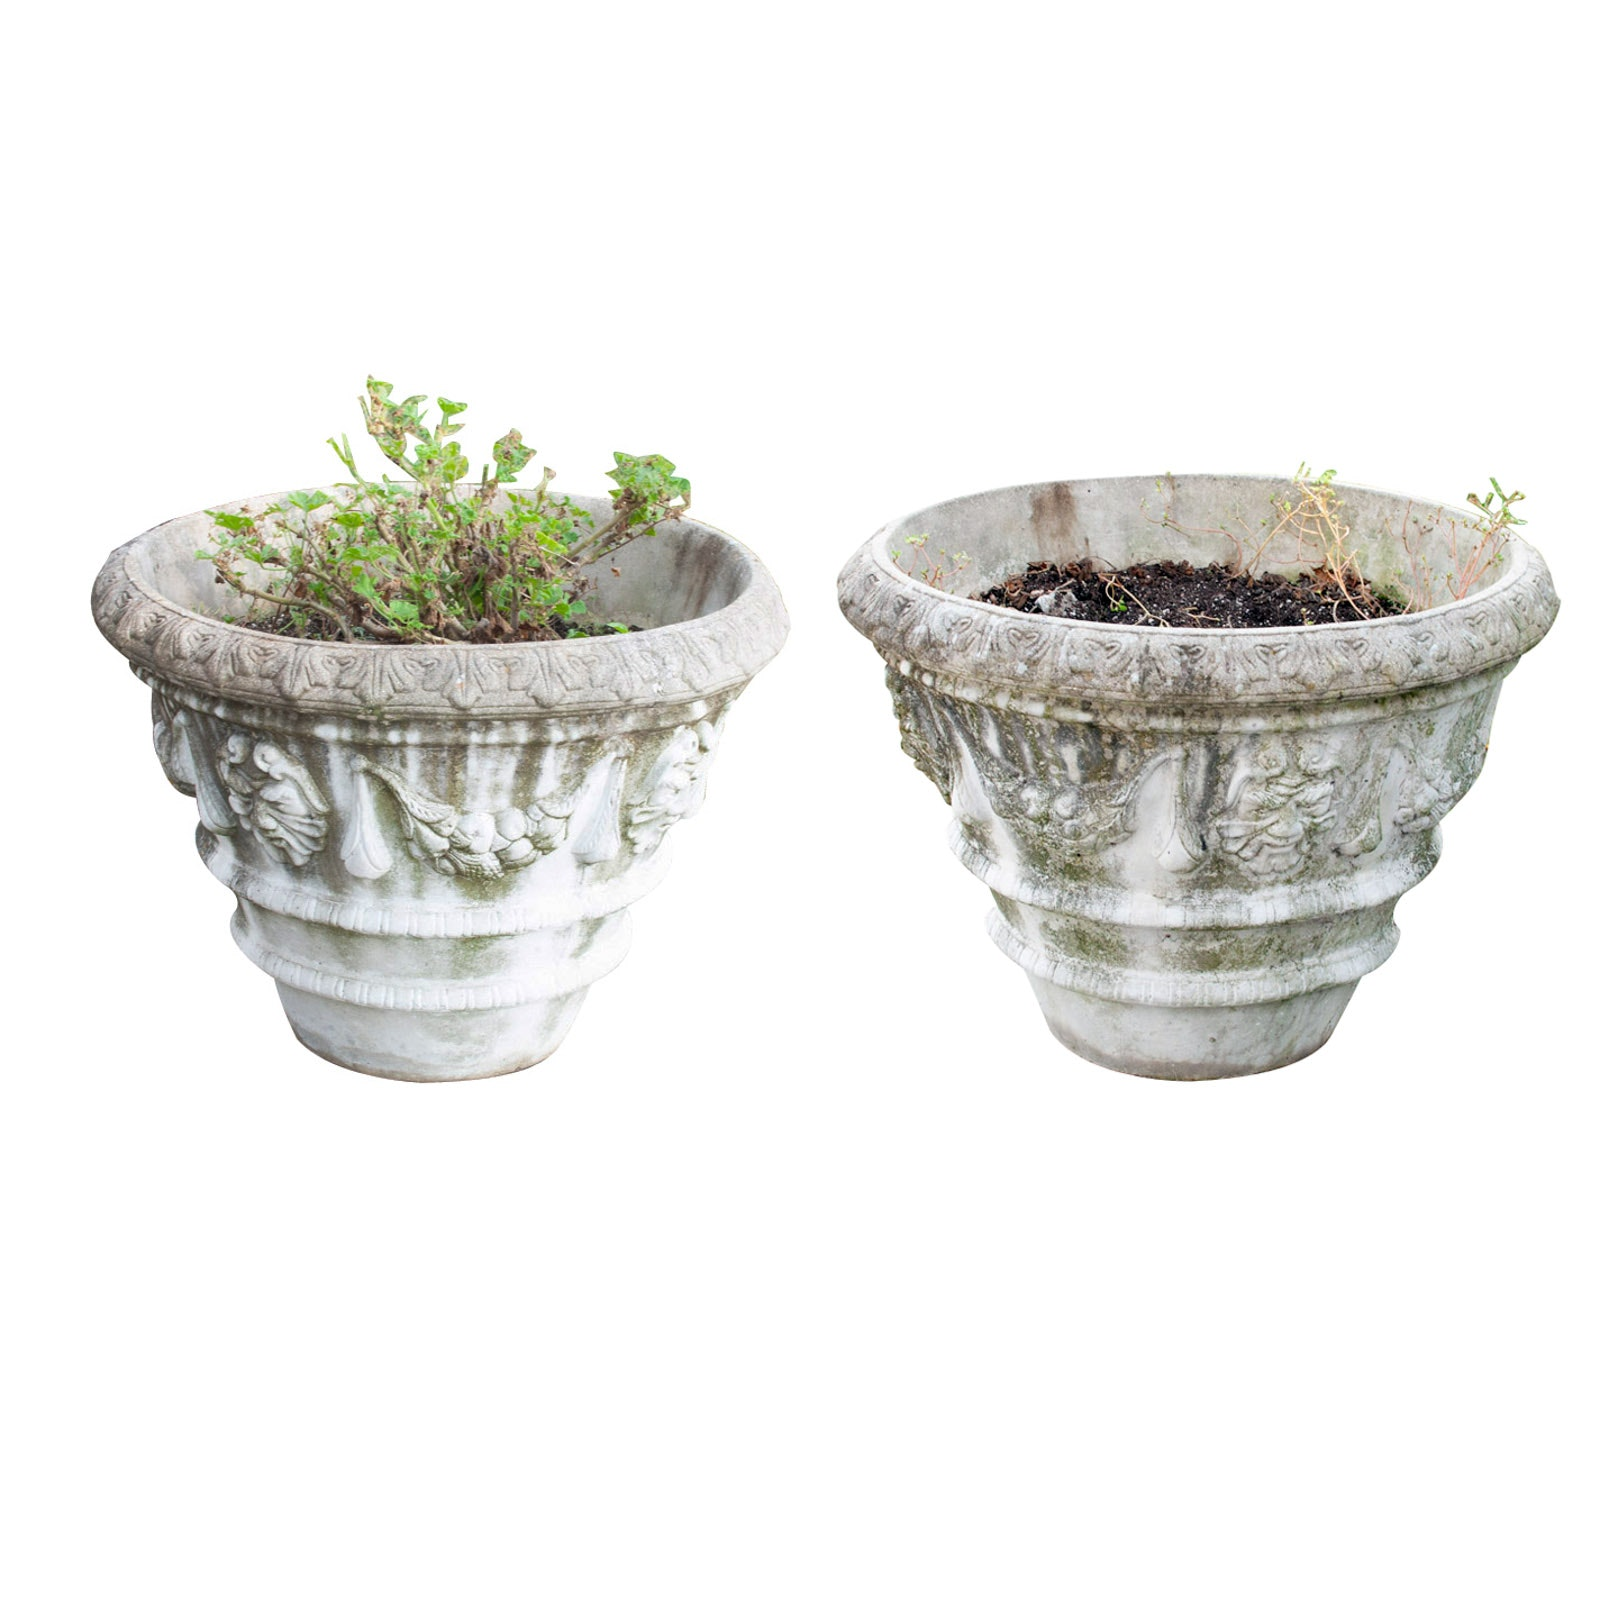 Pair of Large Outdoor Concrete Planters